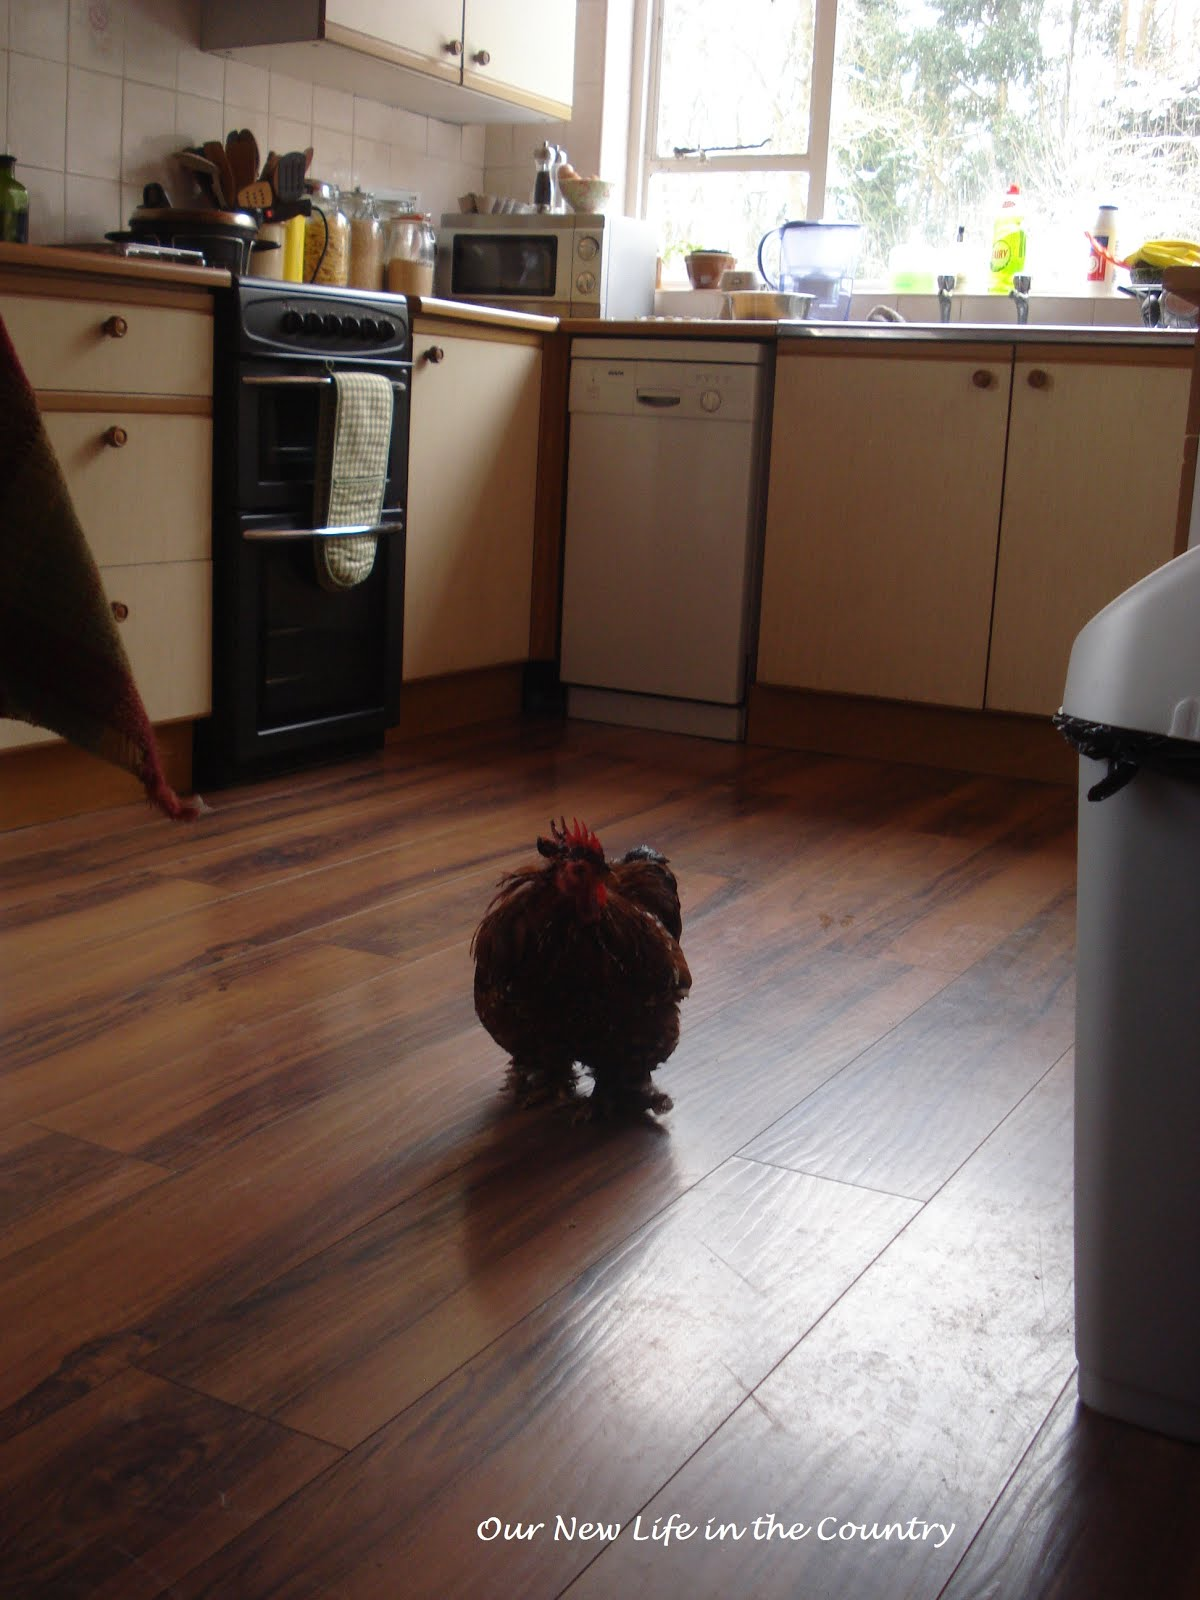 Our new life in the country a cockerel in my kitchen for Our life in the kitchen